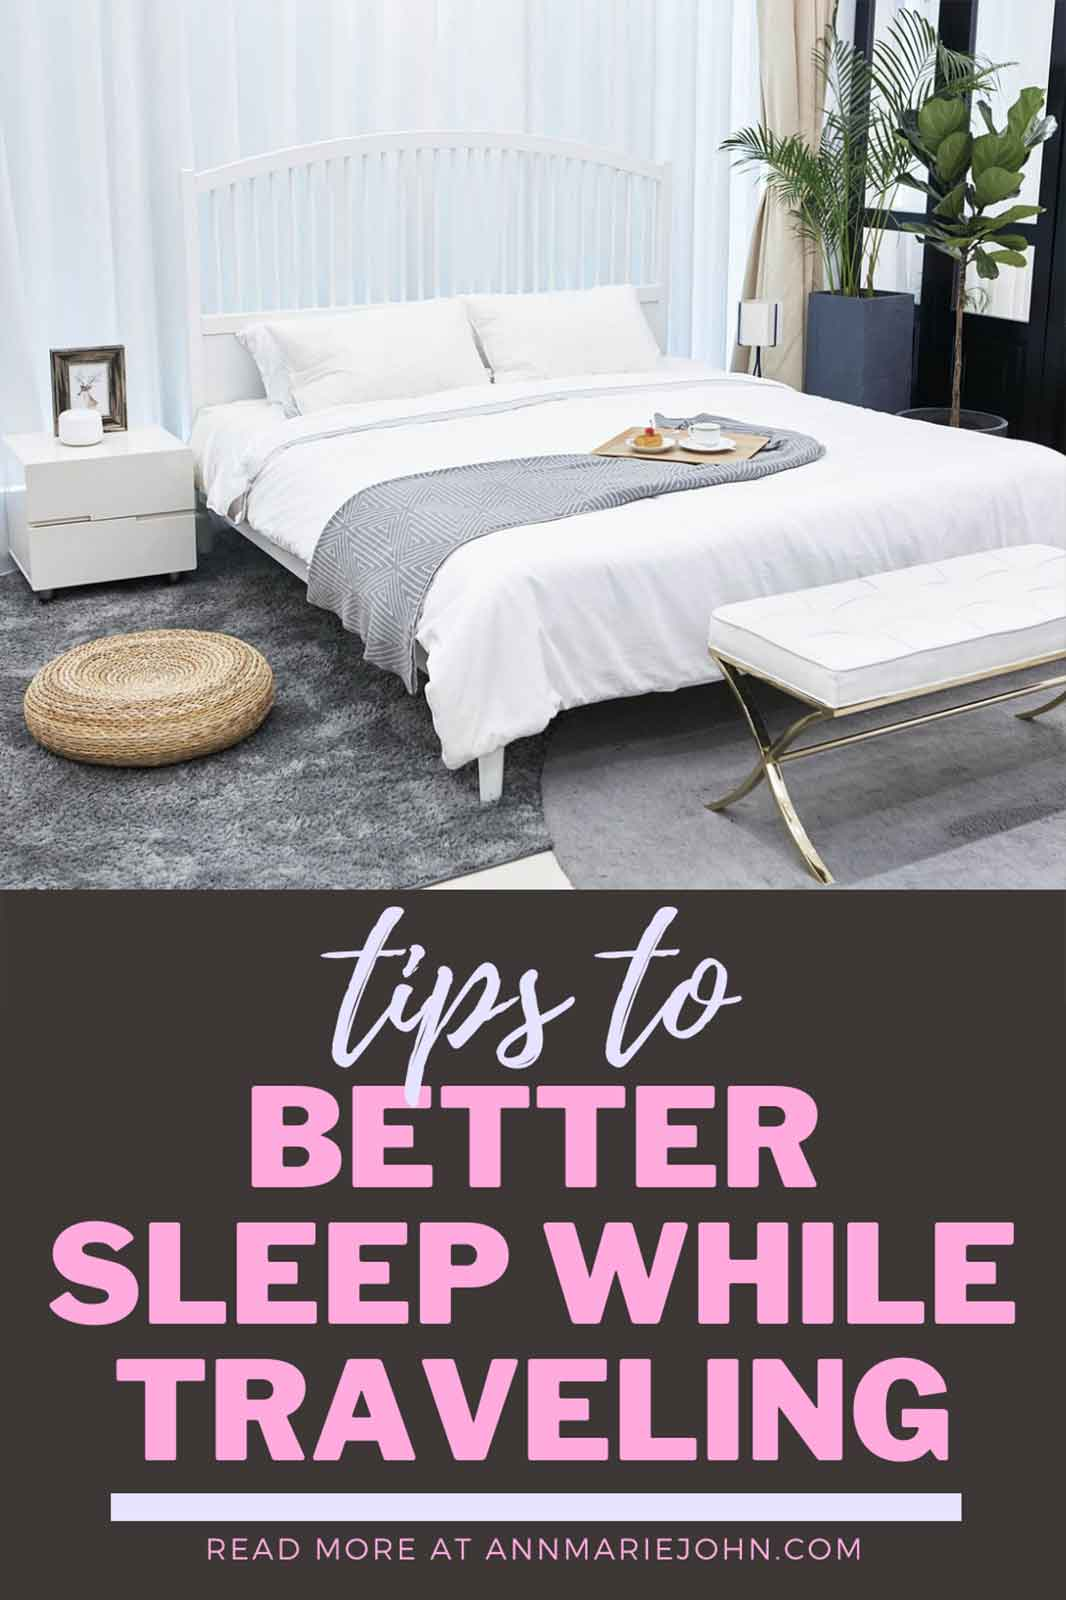 Tips to Better Sleep While Traveling